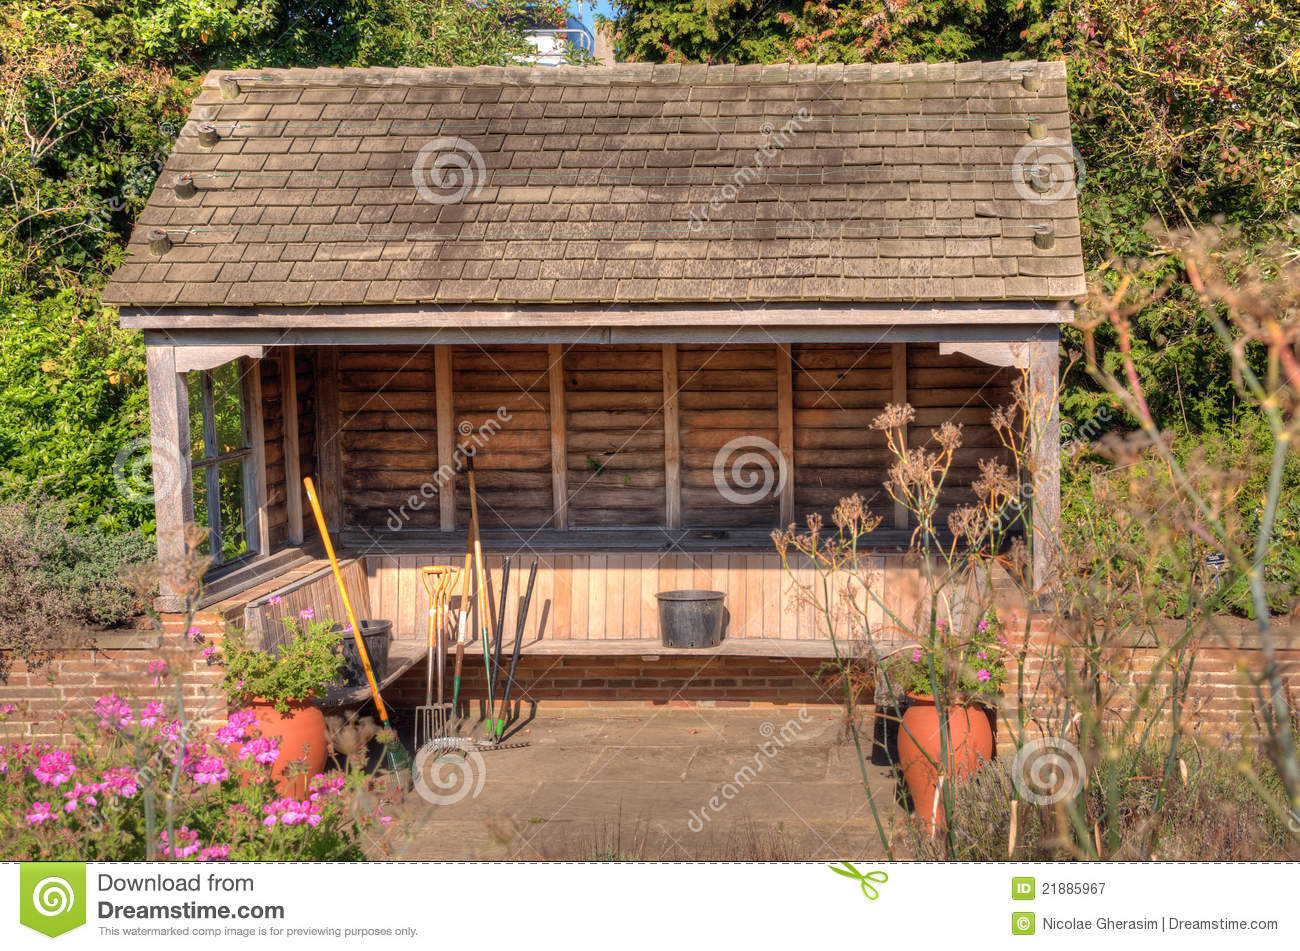 Scenic view of assorted gardening tool in wooden shelter with trees in